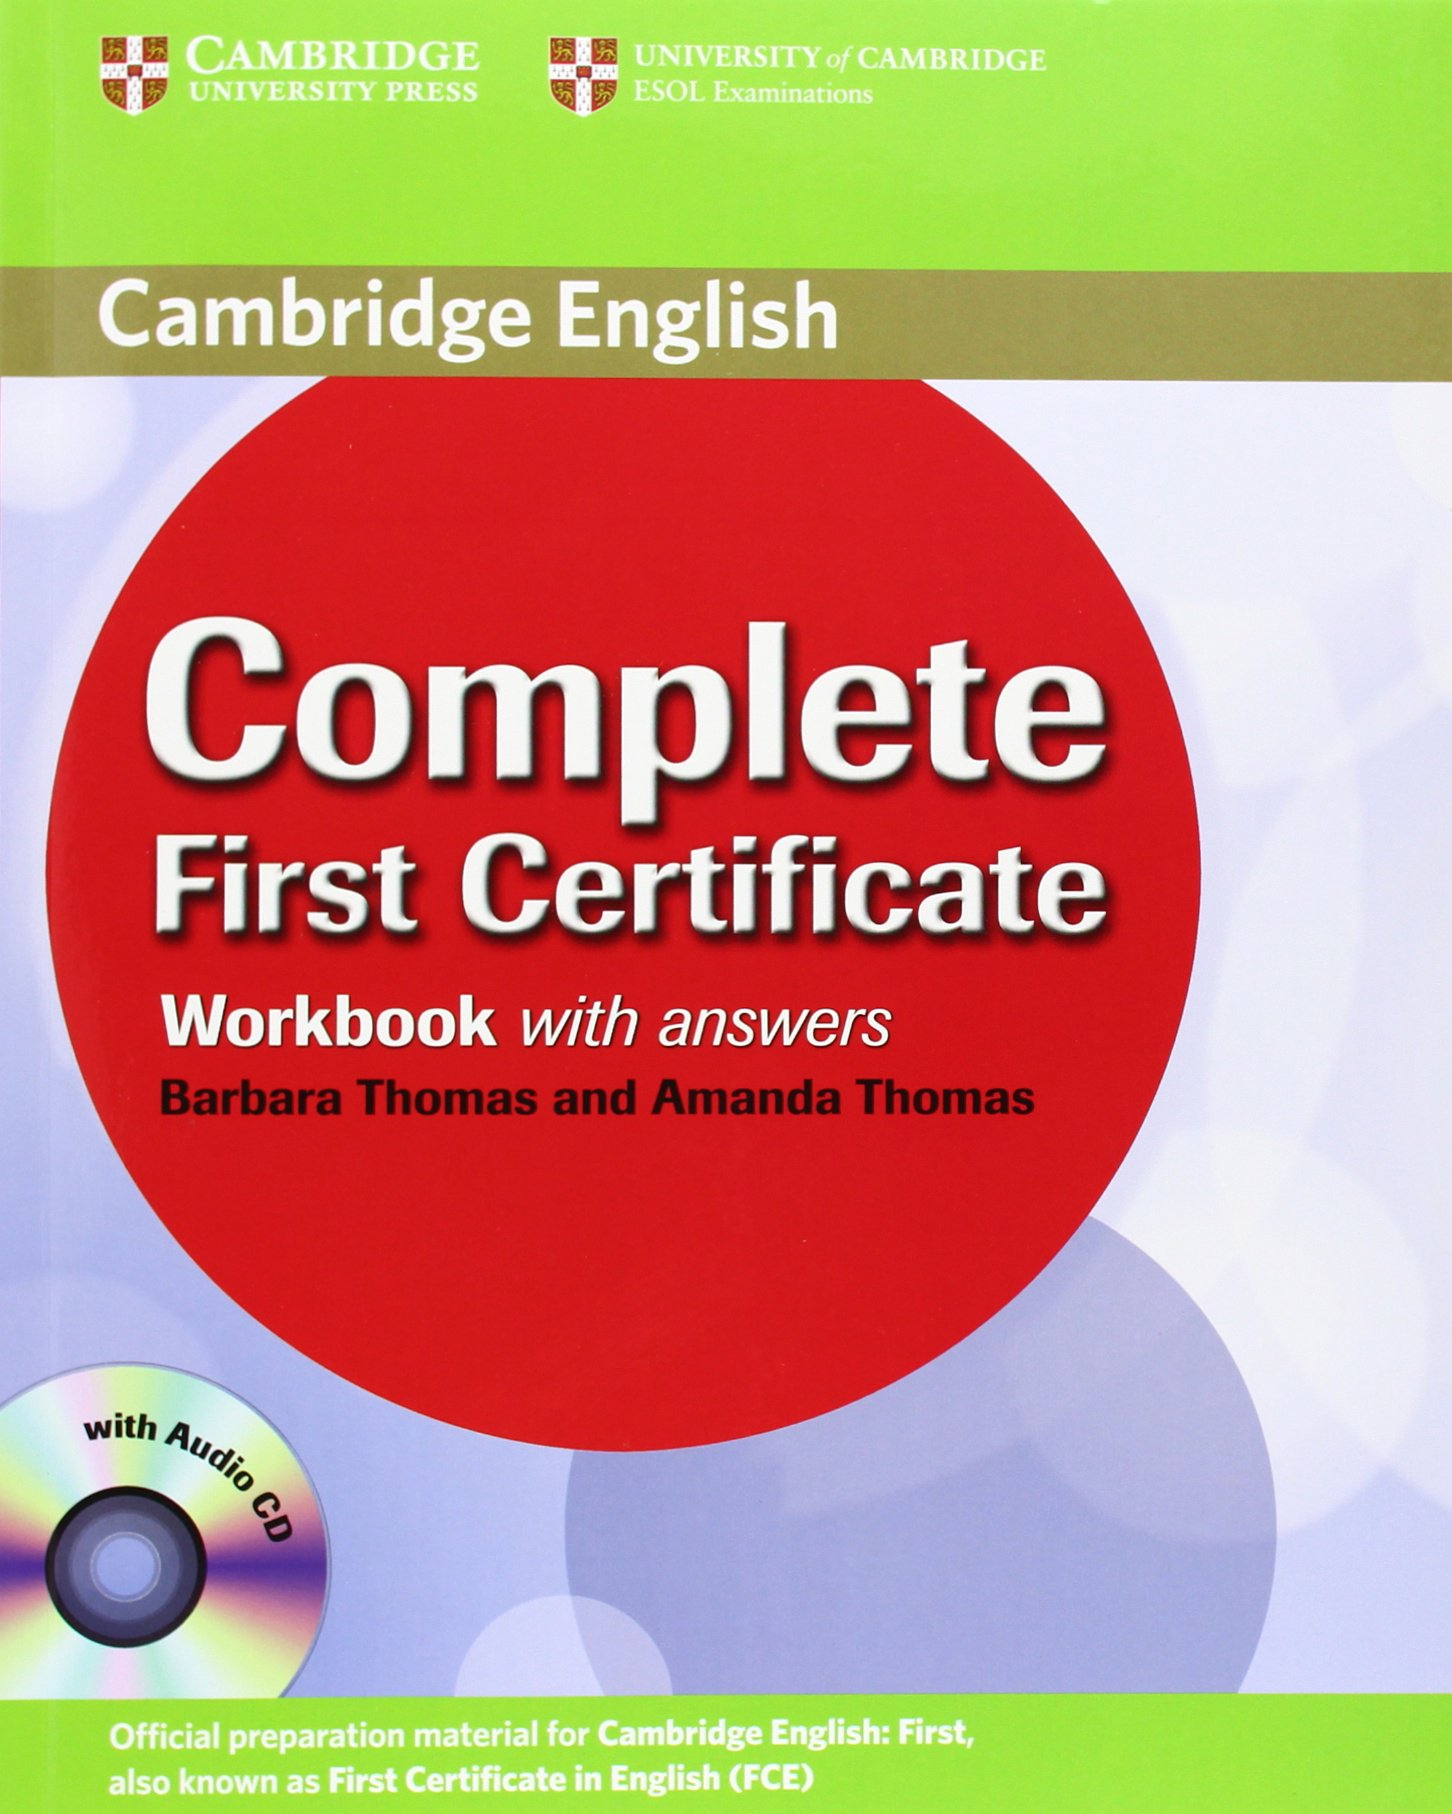 Complete First Certificate Workbook With Answers And Audio Cd Amazon Co Uk Thomas Amanda Thomas Barbara 9780521698320 Books